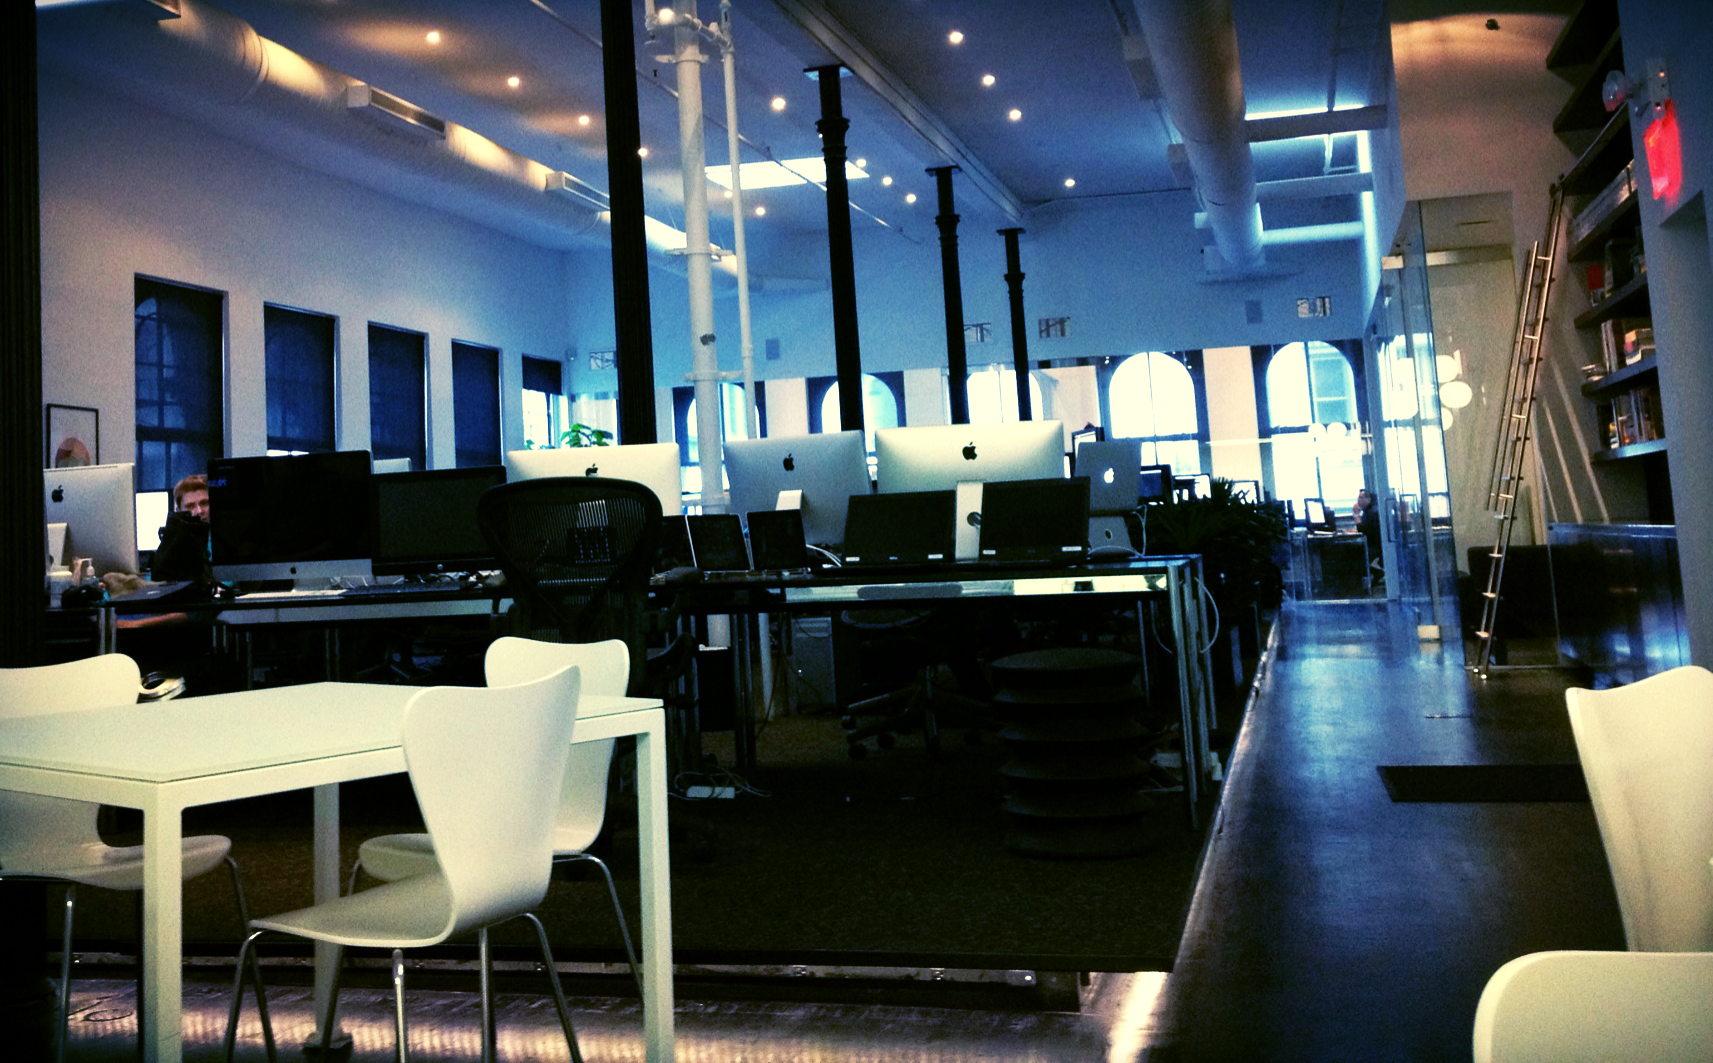 The staff at Squarespace have hands-down some of the nicest digs you could ask for.